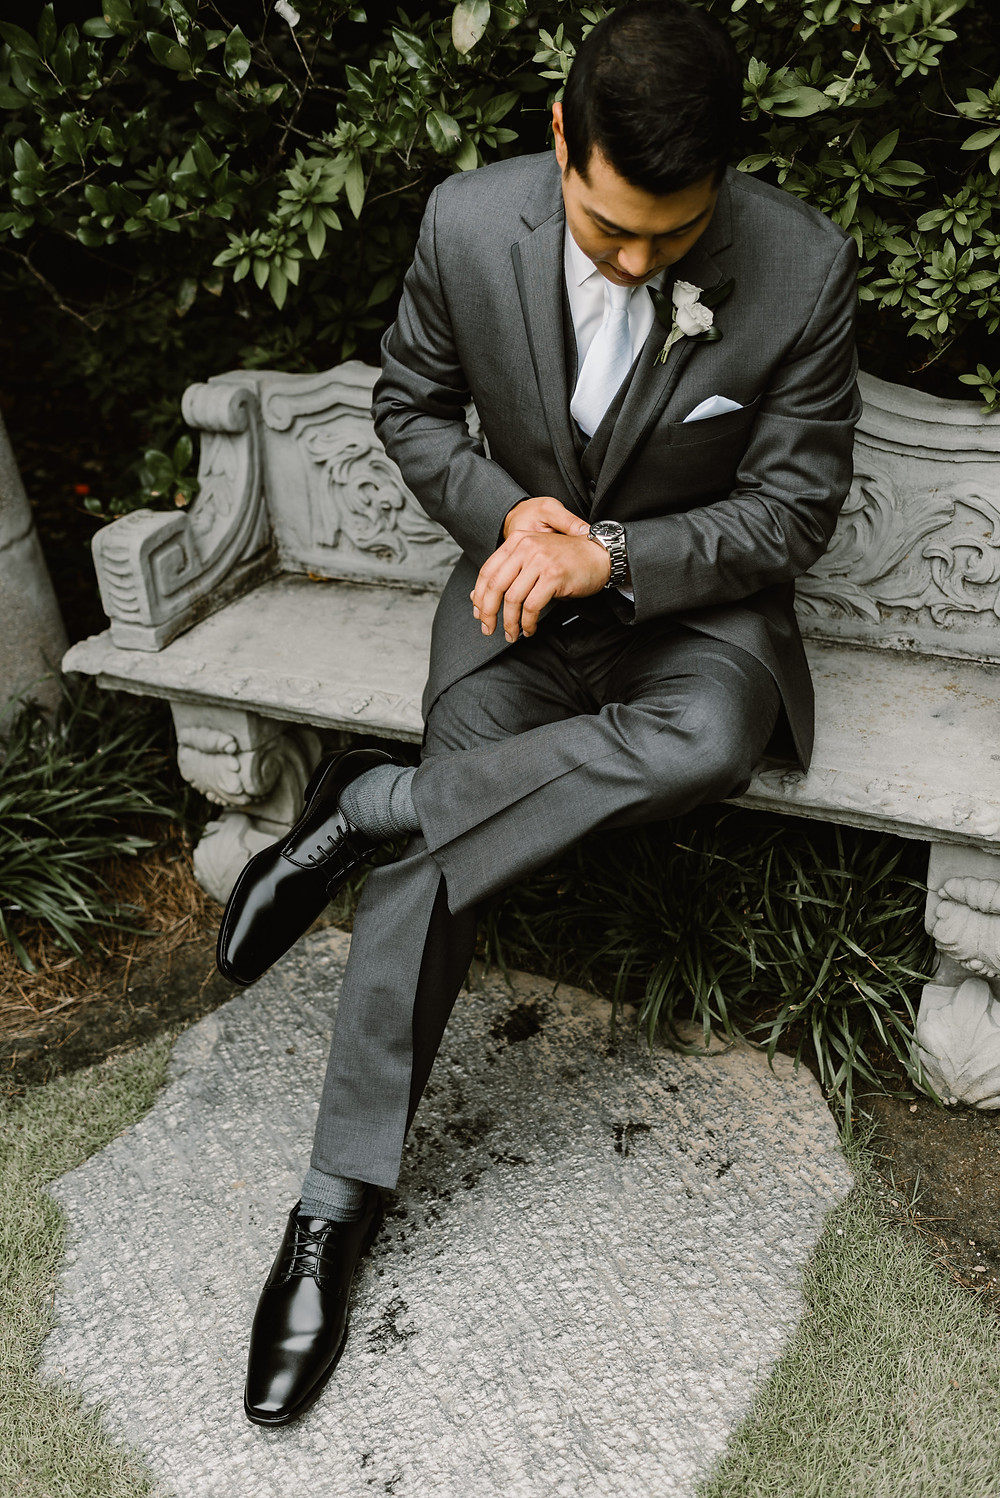 Asian Groom in a gray suit looking at his watch